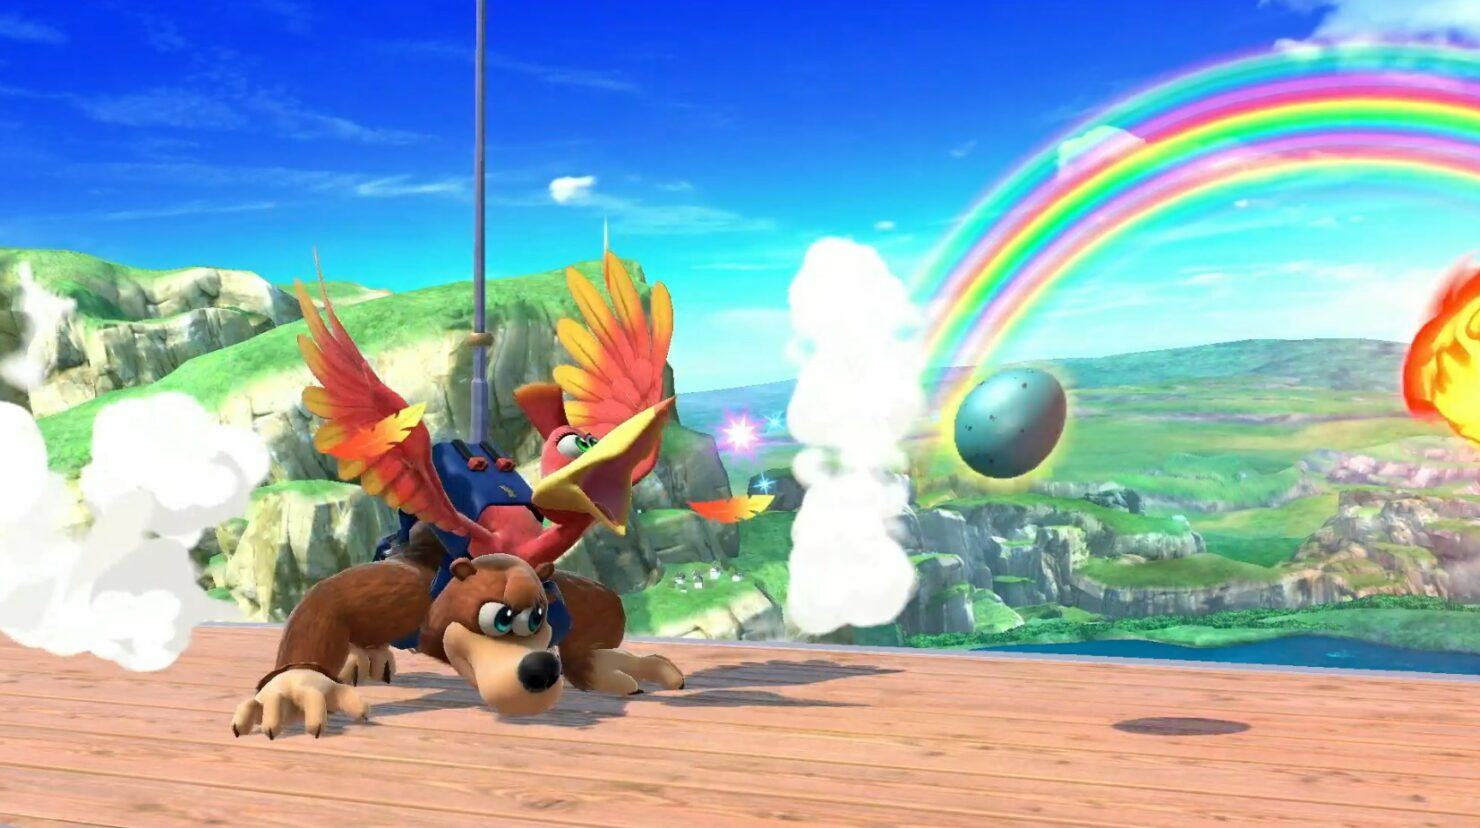 banjo-and-kazooie-super-smash-bros-ultimate-switch-announced2